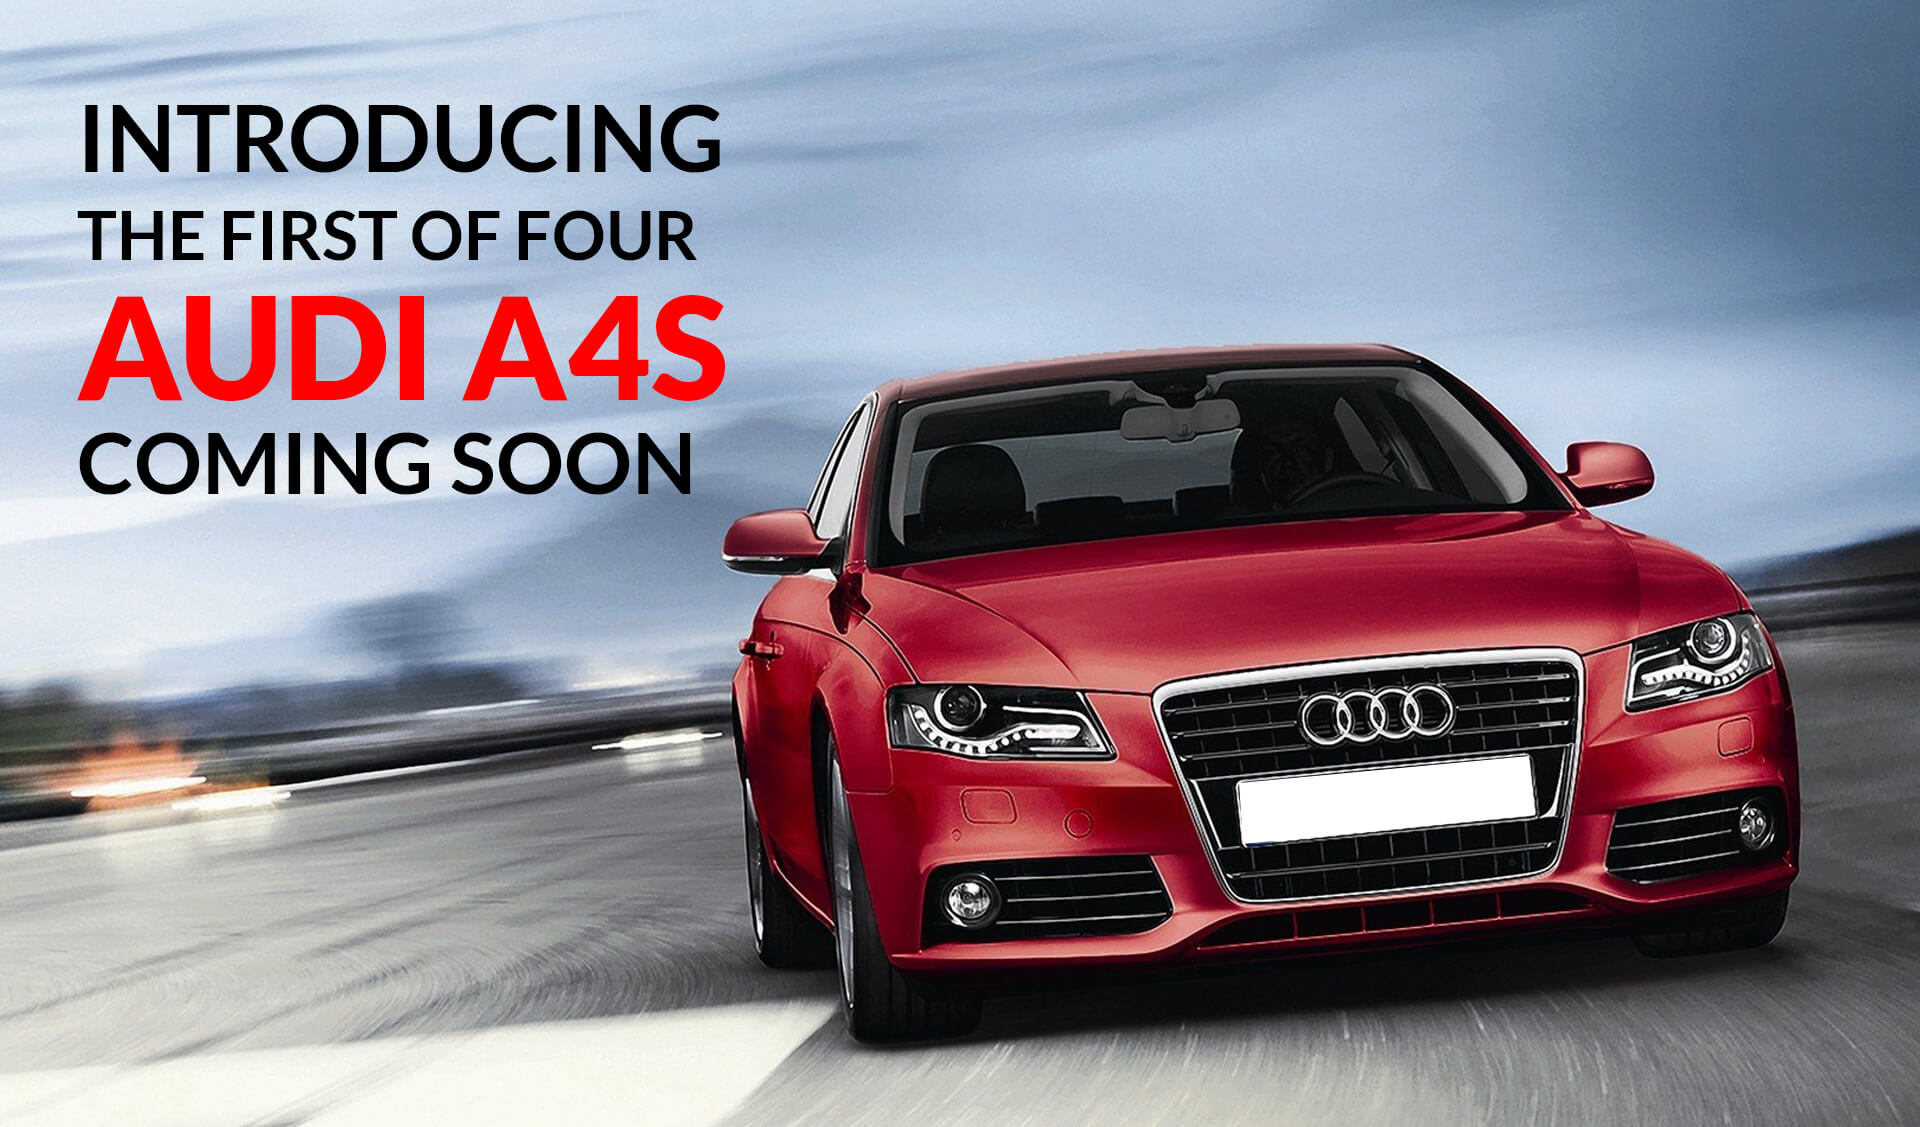 audi 4ps 4ps is privileged to share our performance marketing expertise with top brands we have clients across a wide variety of sectors and international markets.